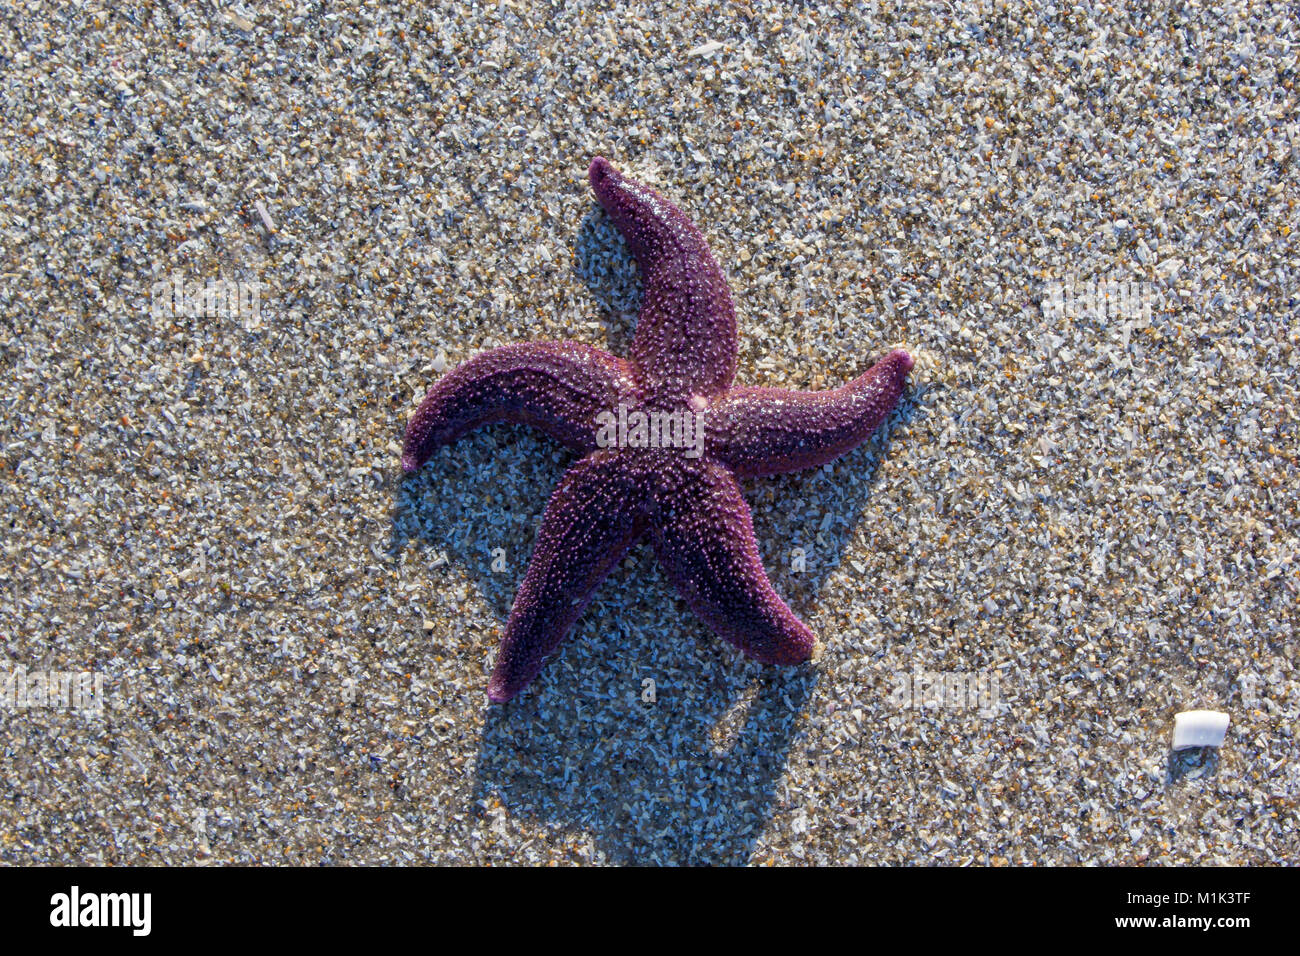 Common starfish on sand beach; Saeby, Denmark - Stock Image